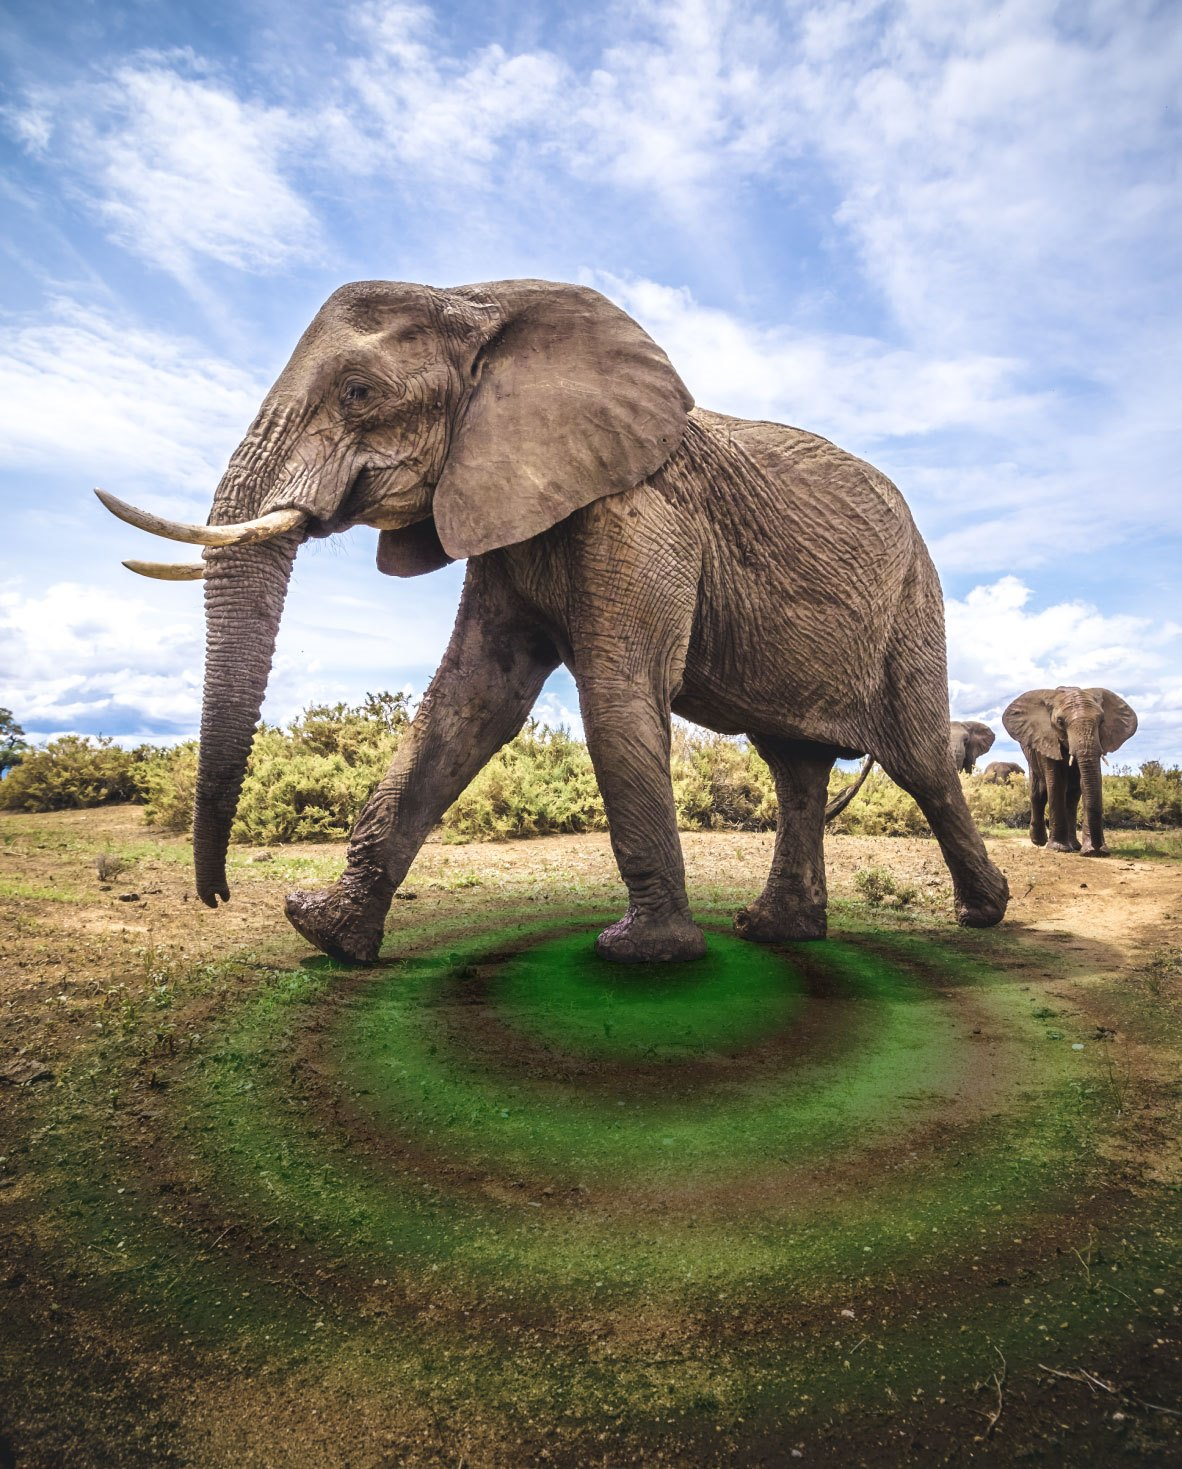 An image showing an African elephant with a visualization of the vibrations it generates while walking.